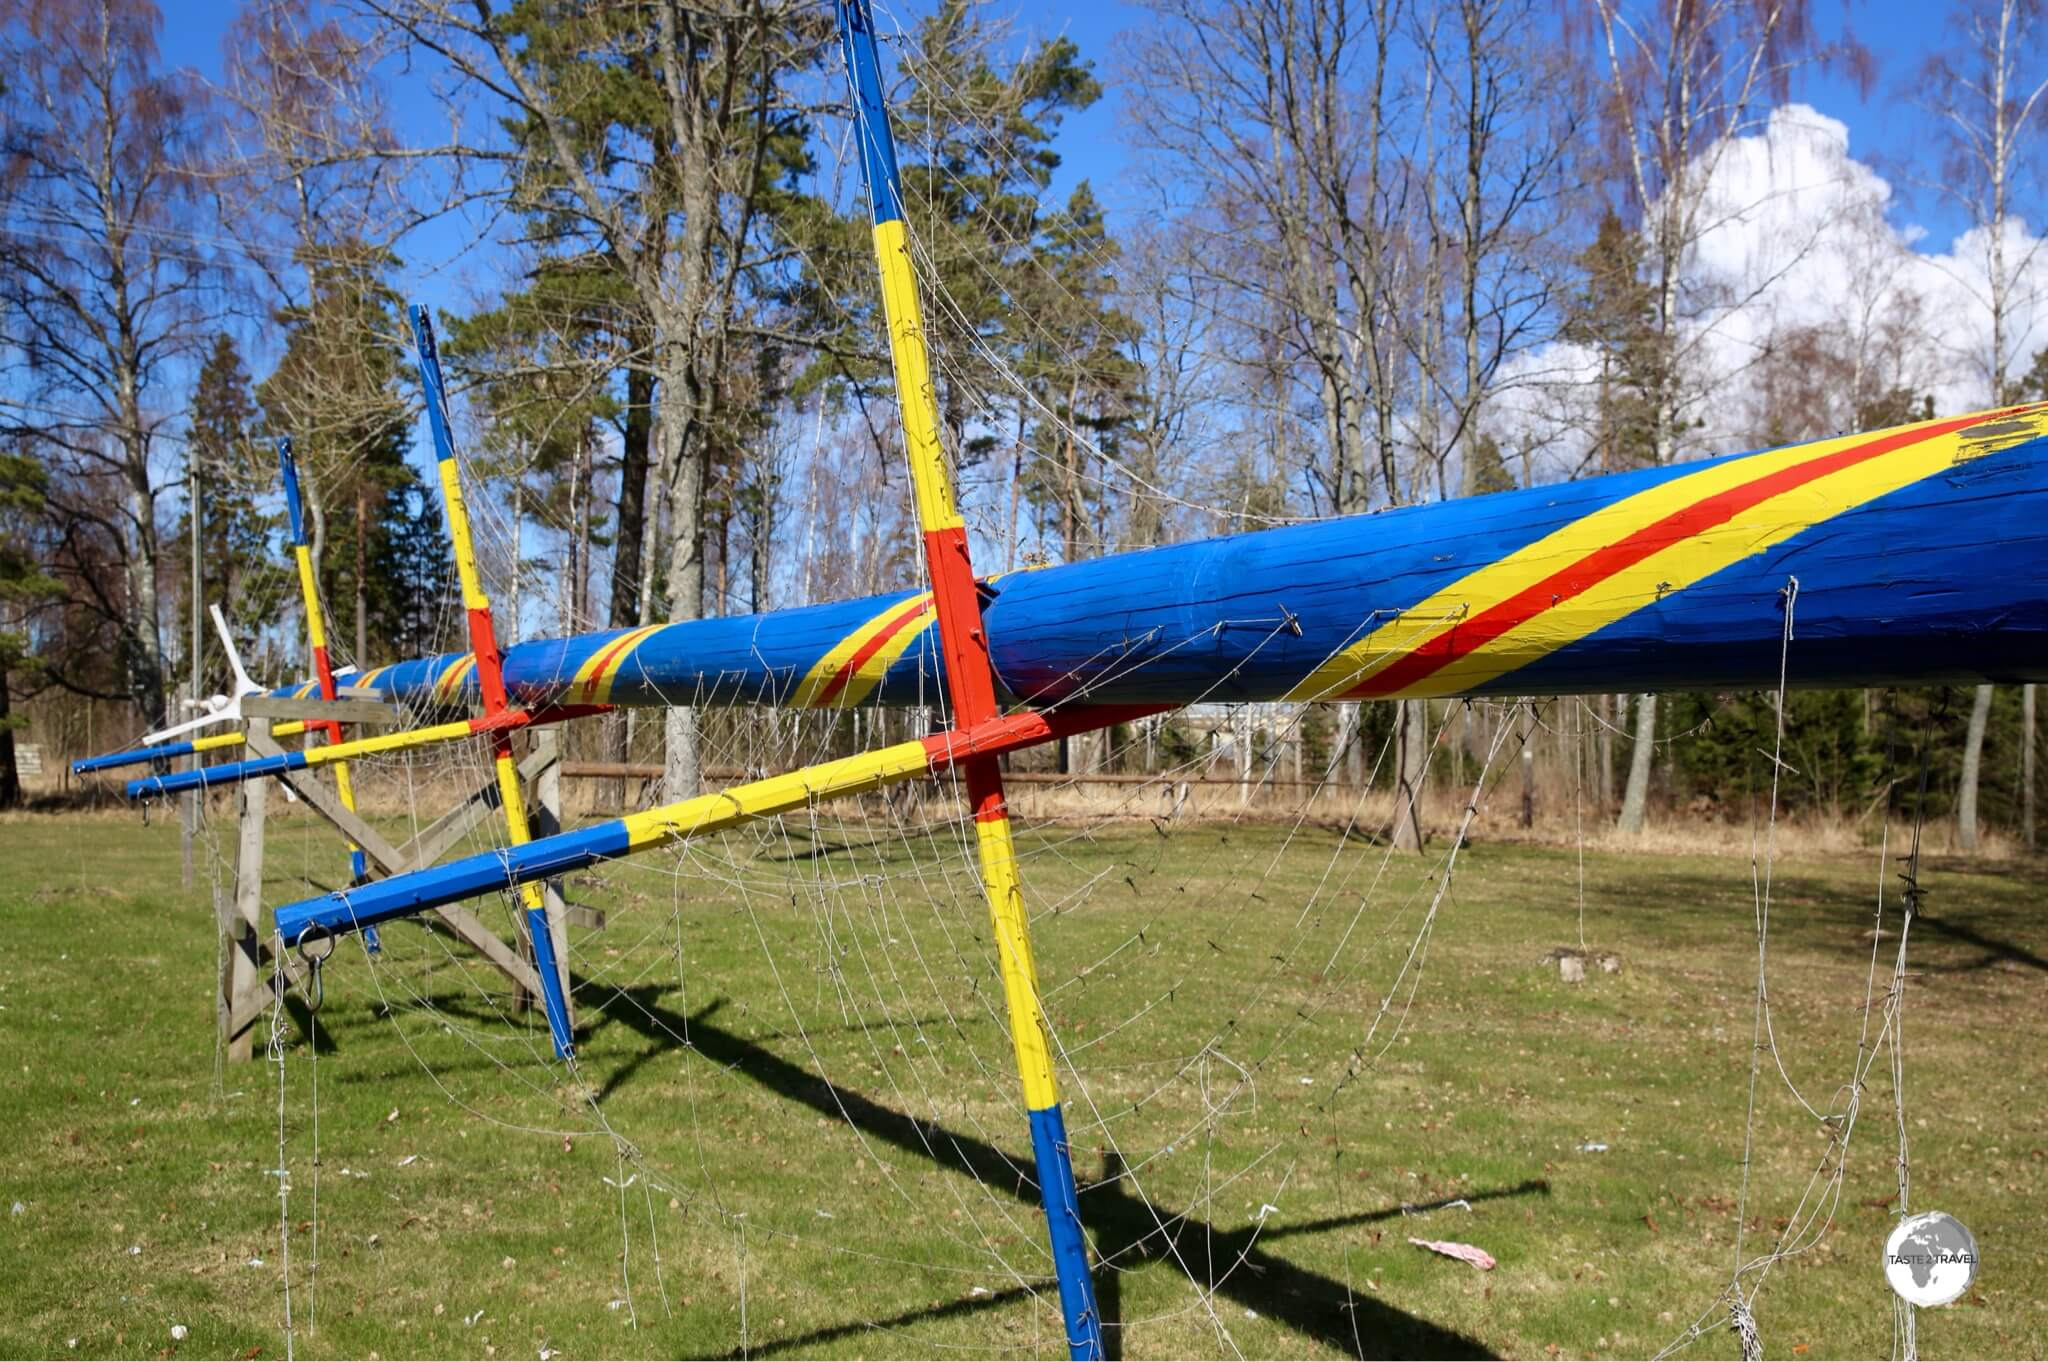 A Maypole painted in the Aland colours being prepared for the upcoming mid-summer festivities.